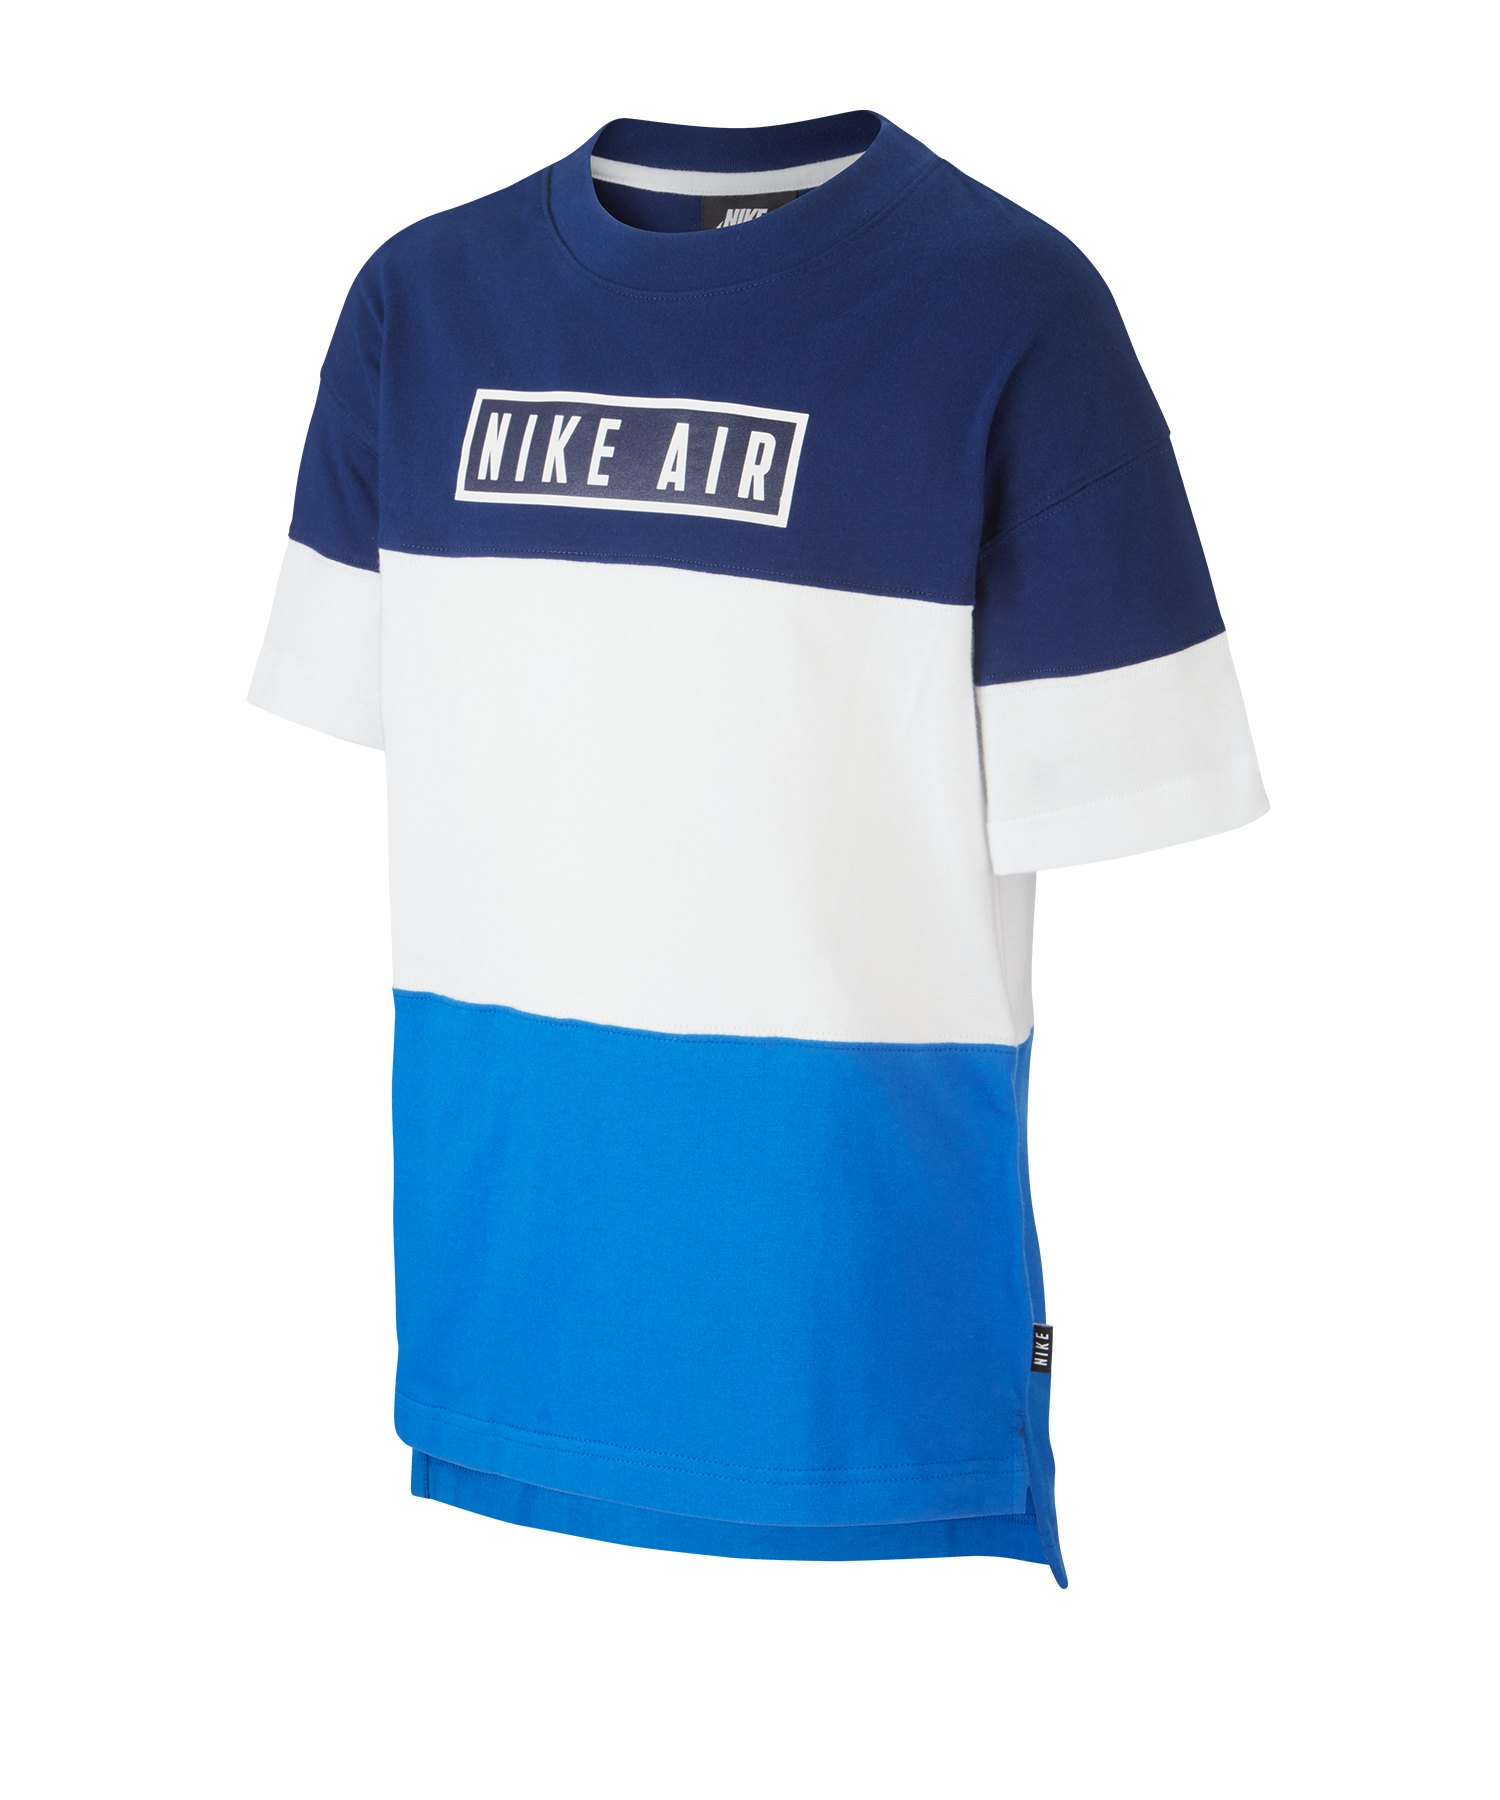 Nike Air Tee Top kurzarm Kids Blau F492 - blau